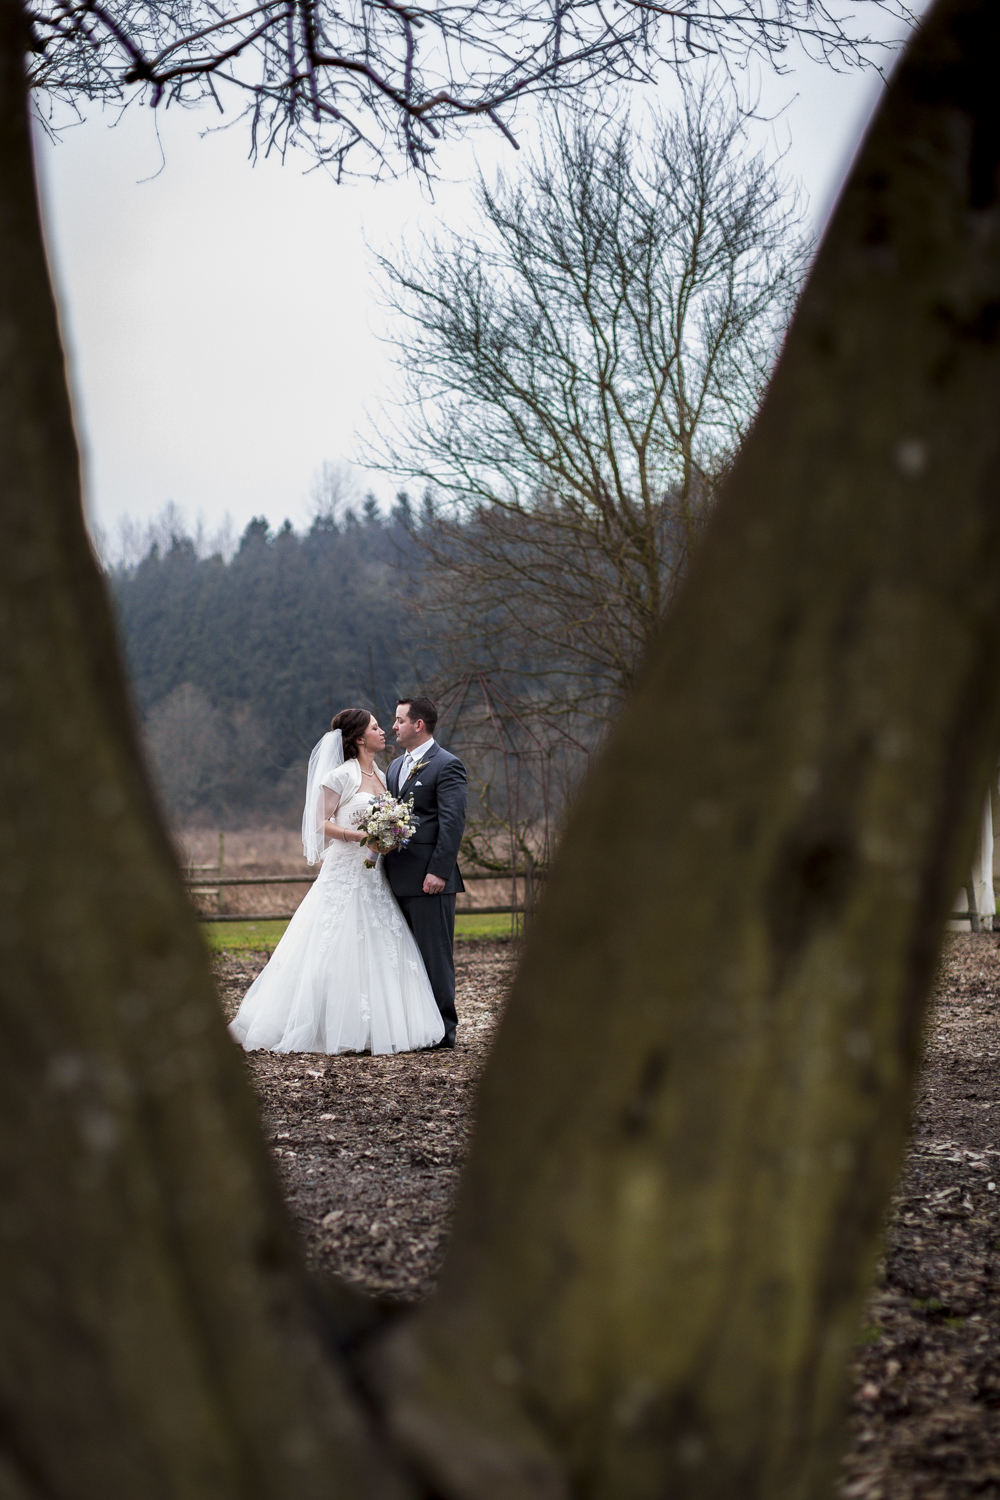 snohomish_seattle_tacoma_pnw_photographer_remotewedding_photographer_weddingphotography_modernweddings_beautifulbride_seattlebride_bellevuebride_pnwbride_washington_military_photoshoot-48.jpg